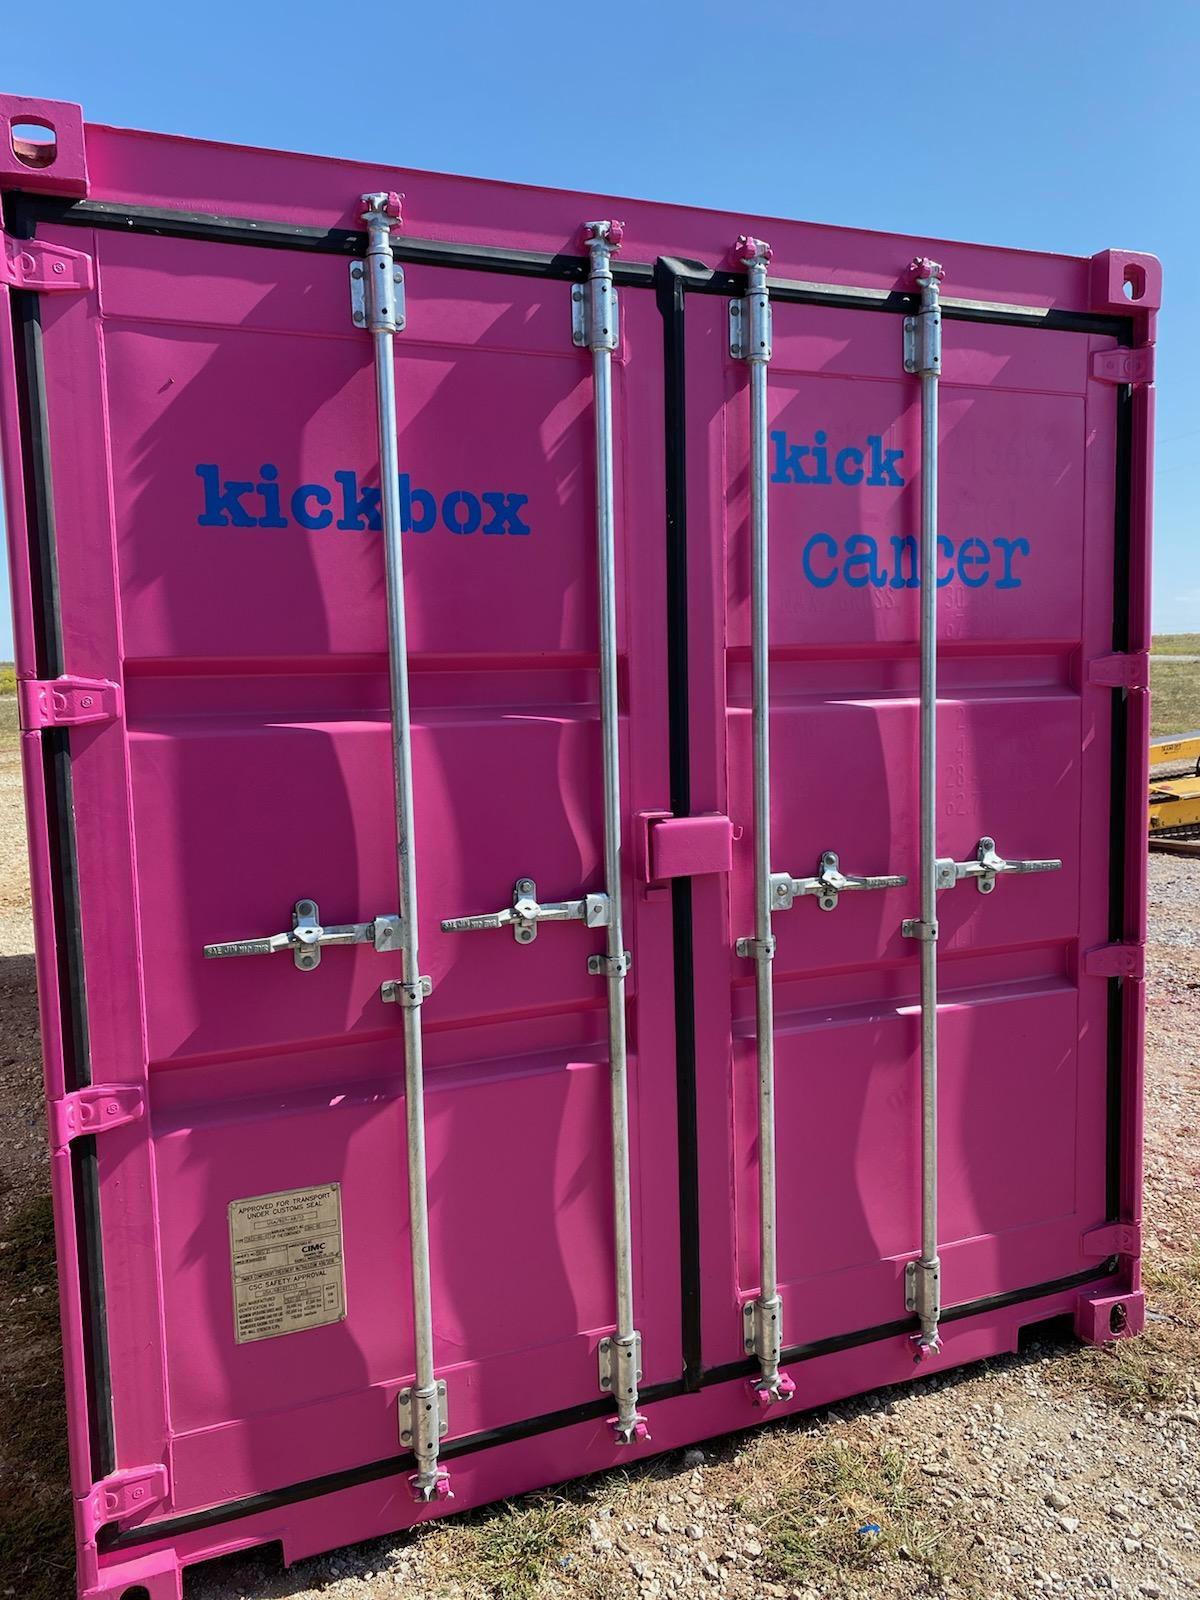 Kickbox Leasing, LLC is Doing Their Part in the Fight Against Breast Cancer